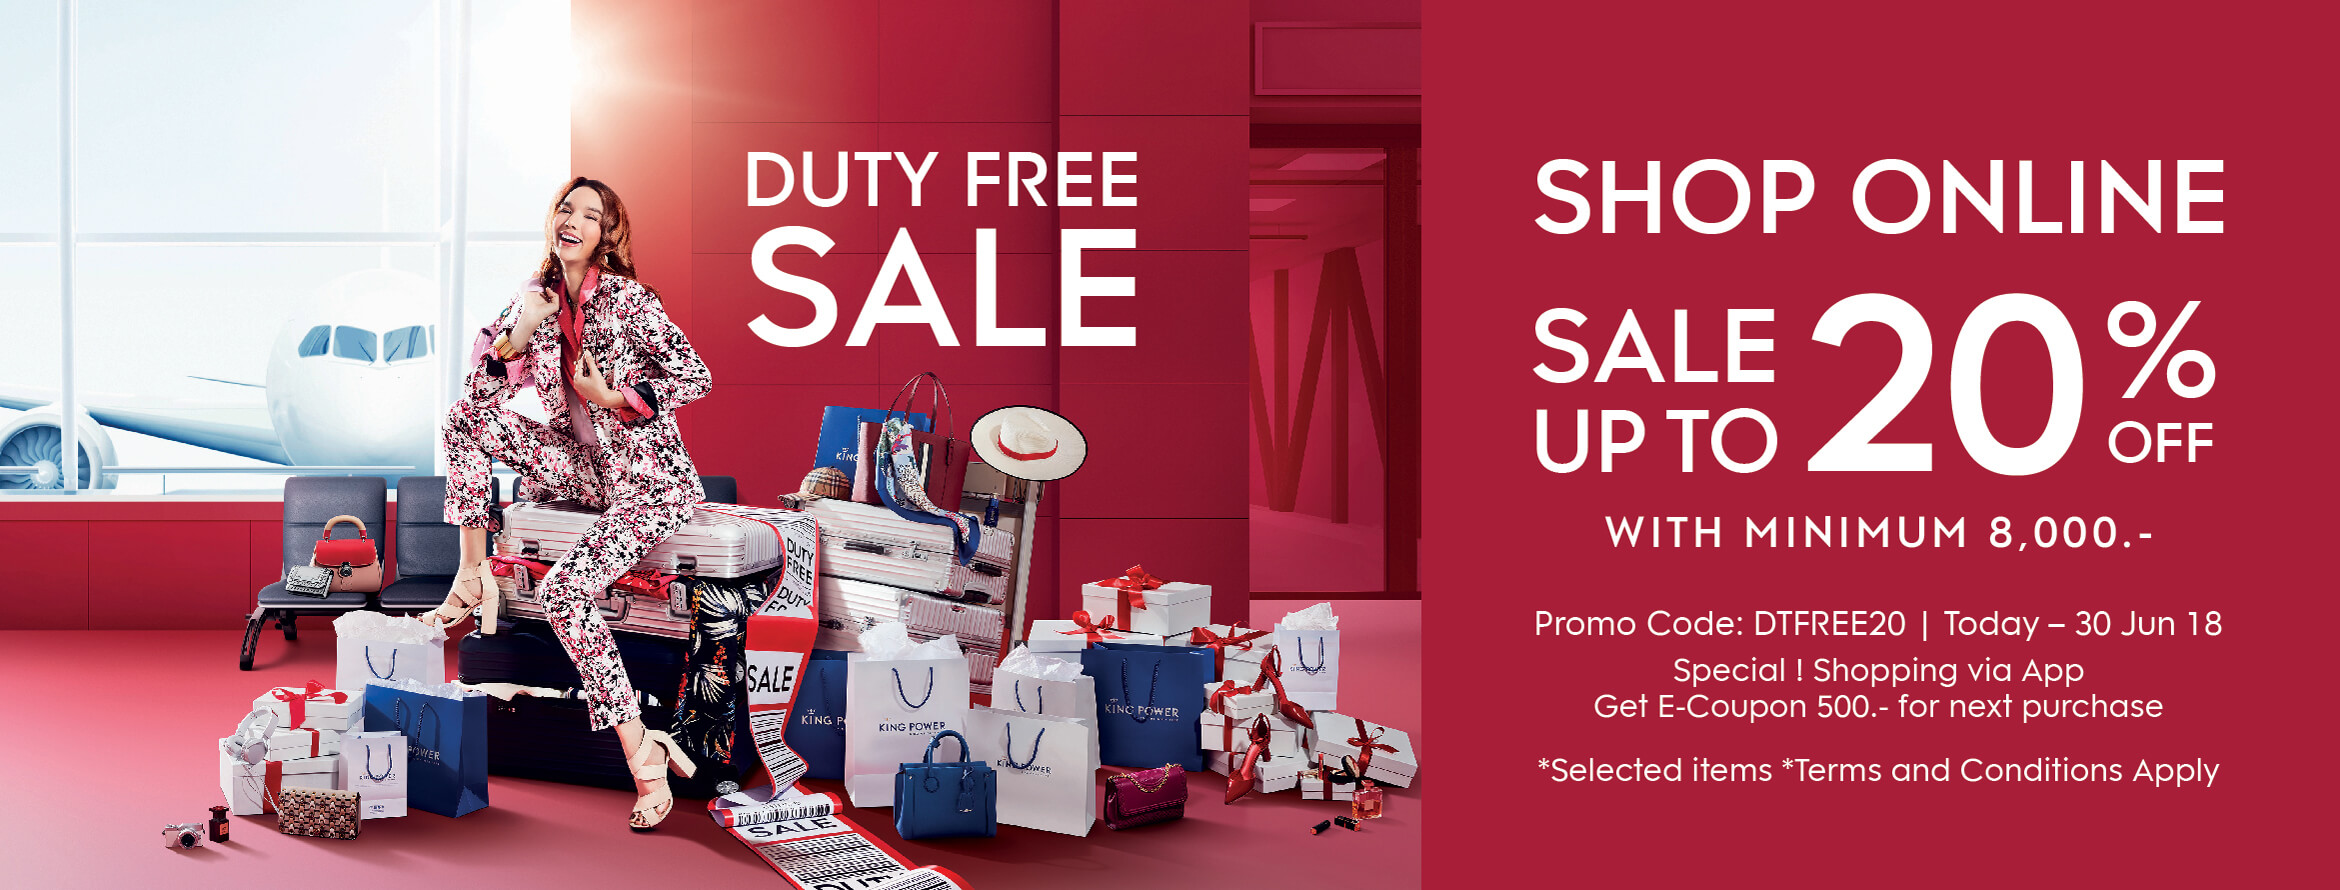 Purchasing Power Promo Code >> King Power Condition Duty Free Sale Up To 20 Off